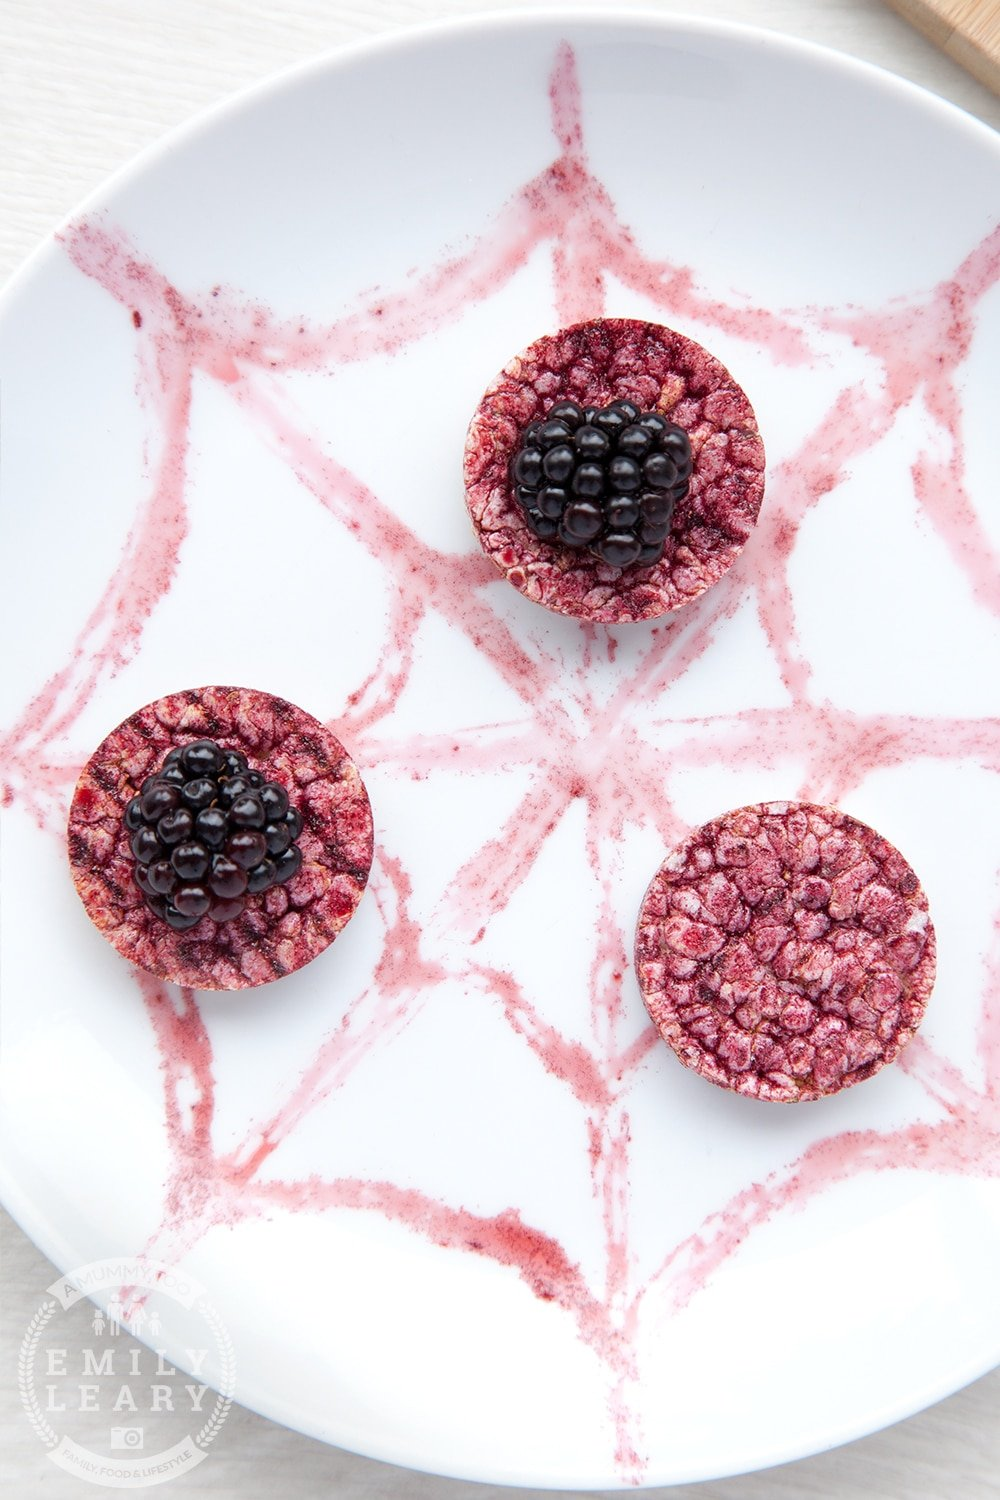 Top your rice cakes with blackberries